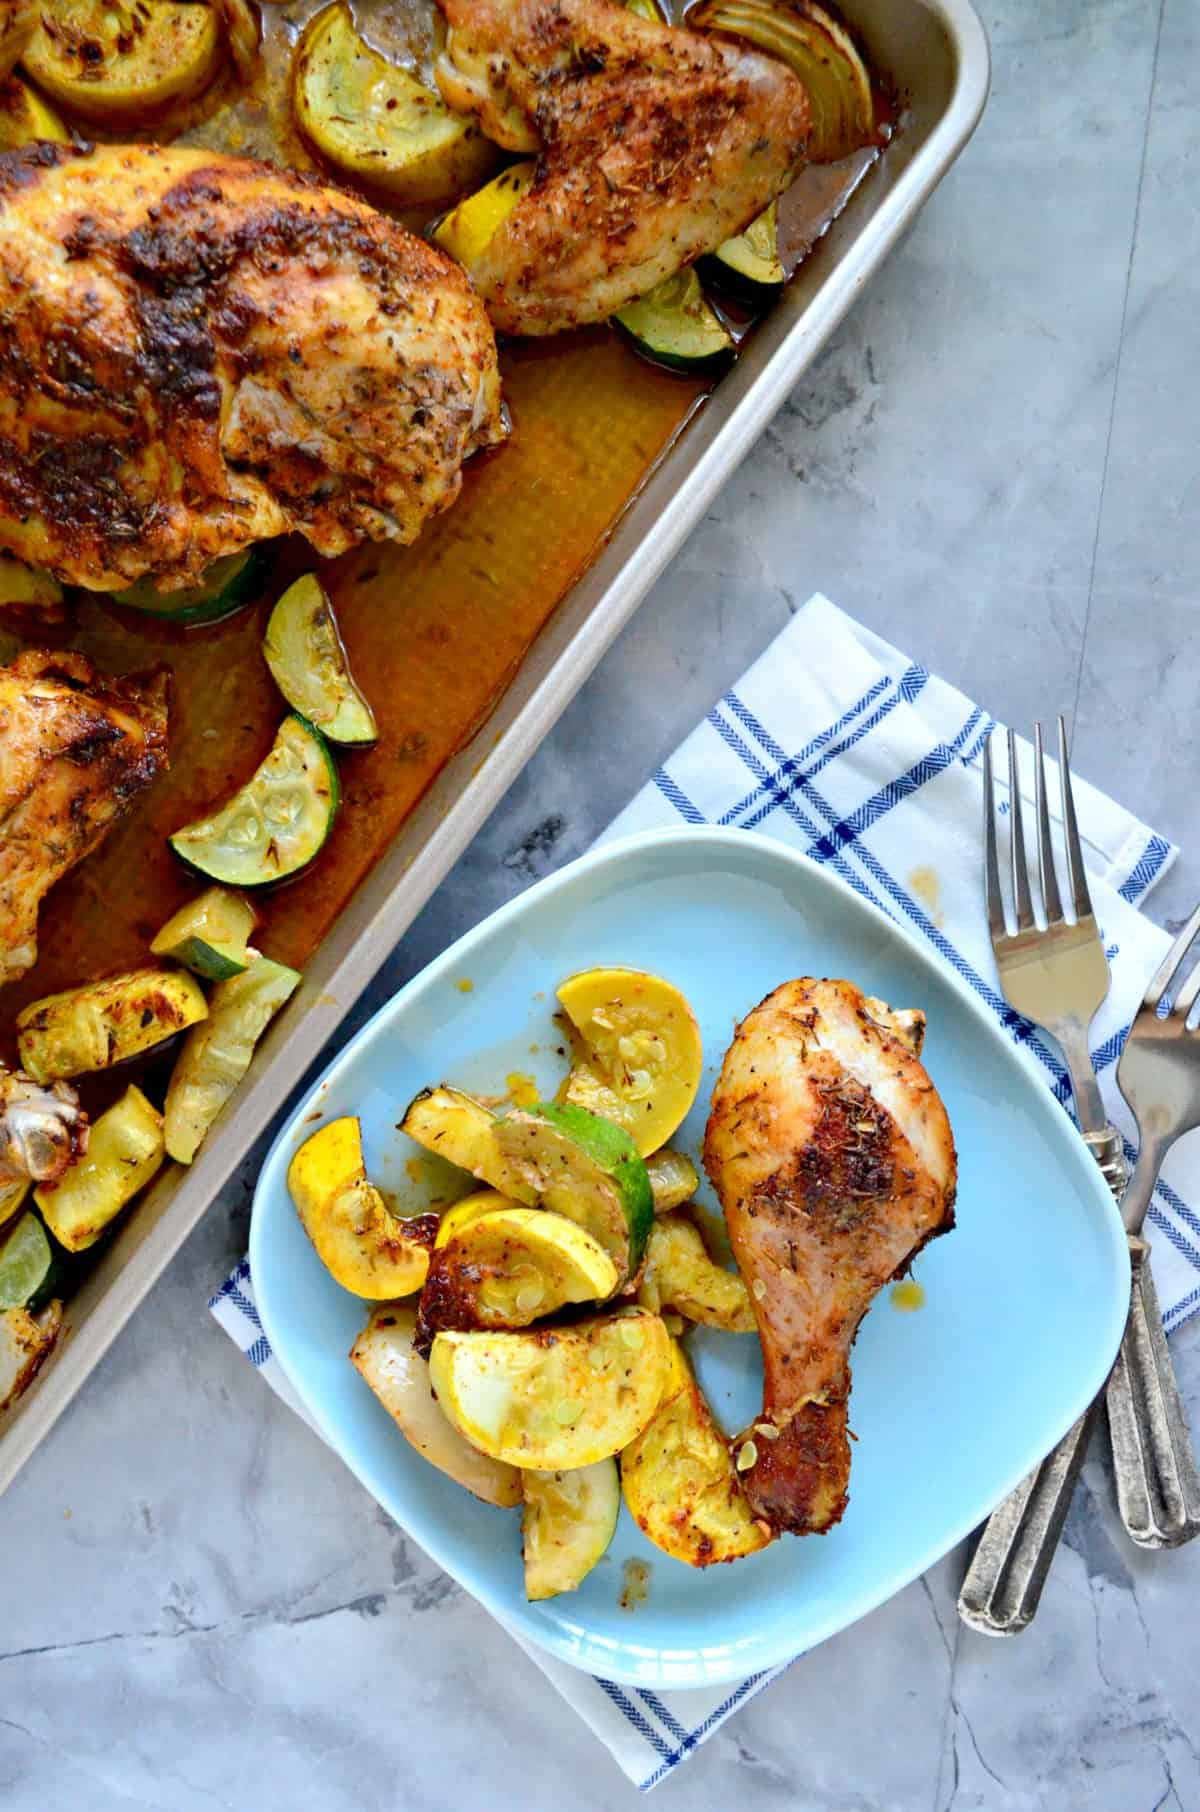 Chicken drumstick with sliced squash and onion on light blue square plate next to sheet pan.